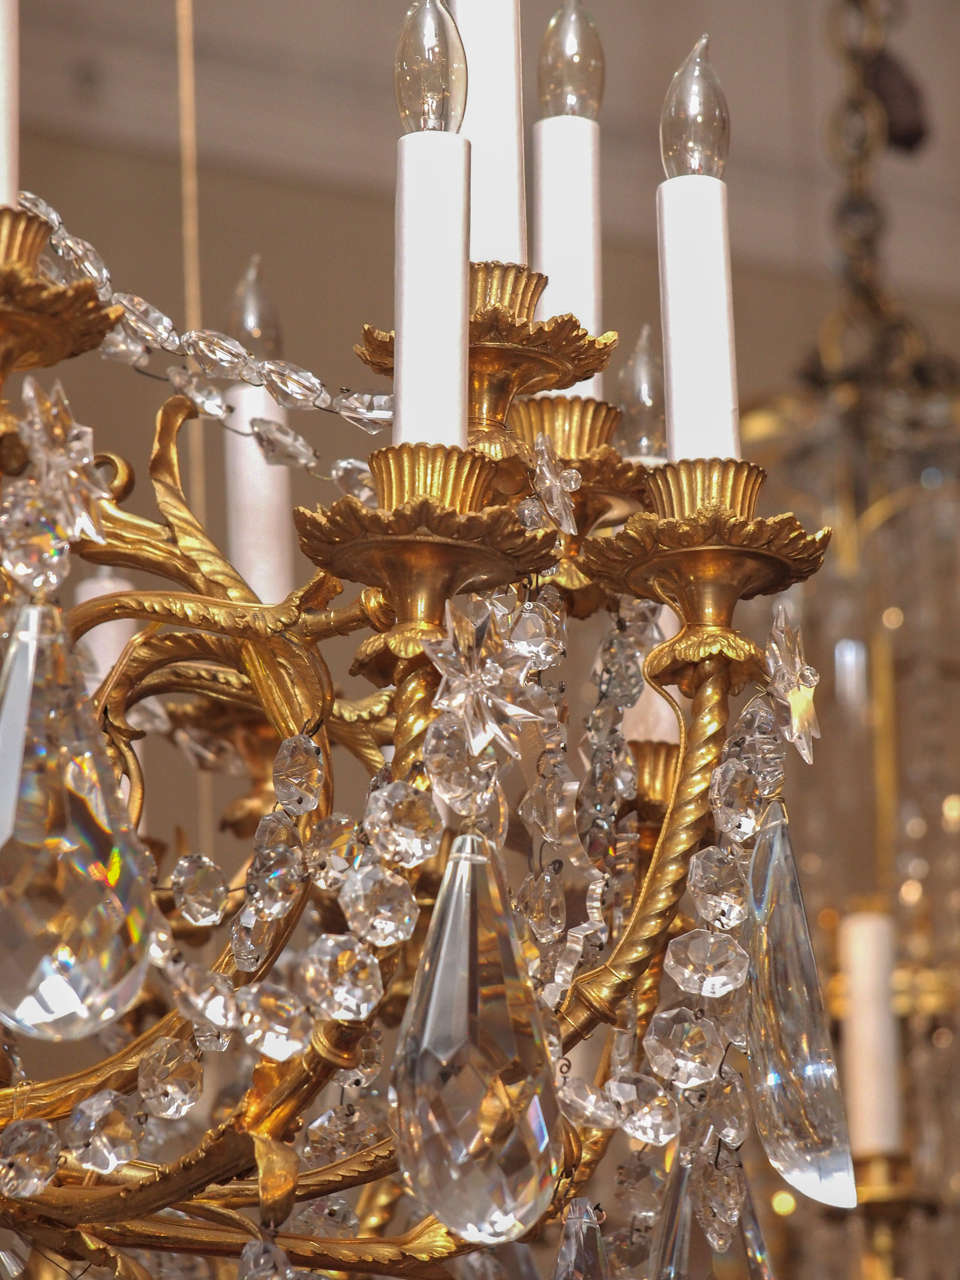 Antique French Baccarat Crystal and Bronze D'ore 24 Light Chandelier circa 1890 6